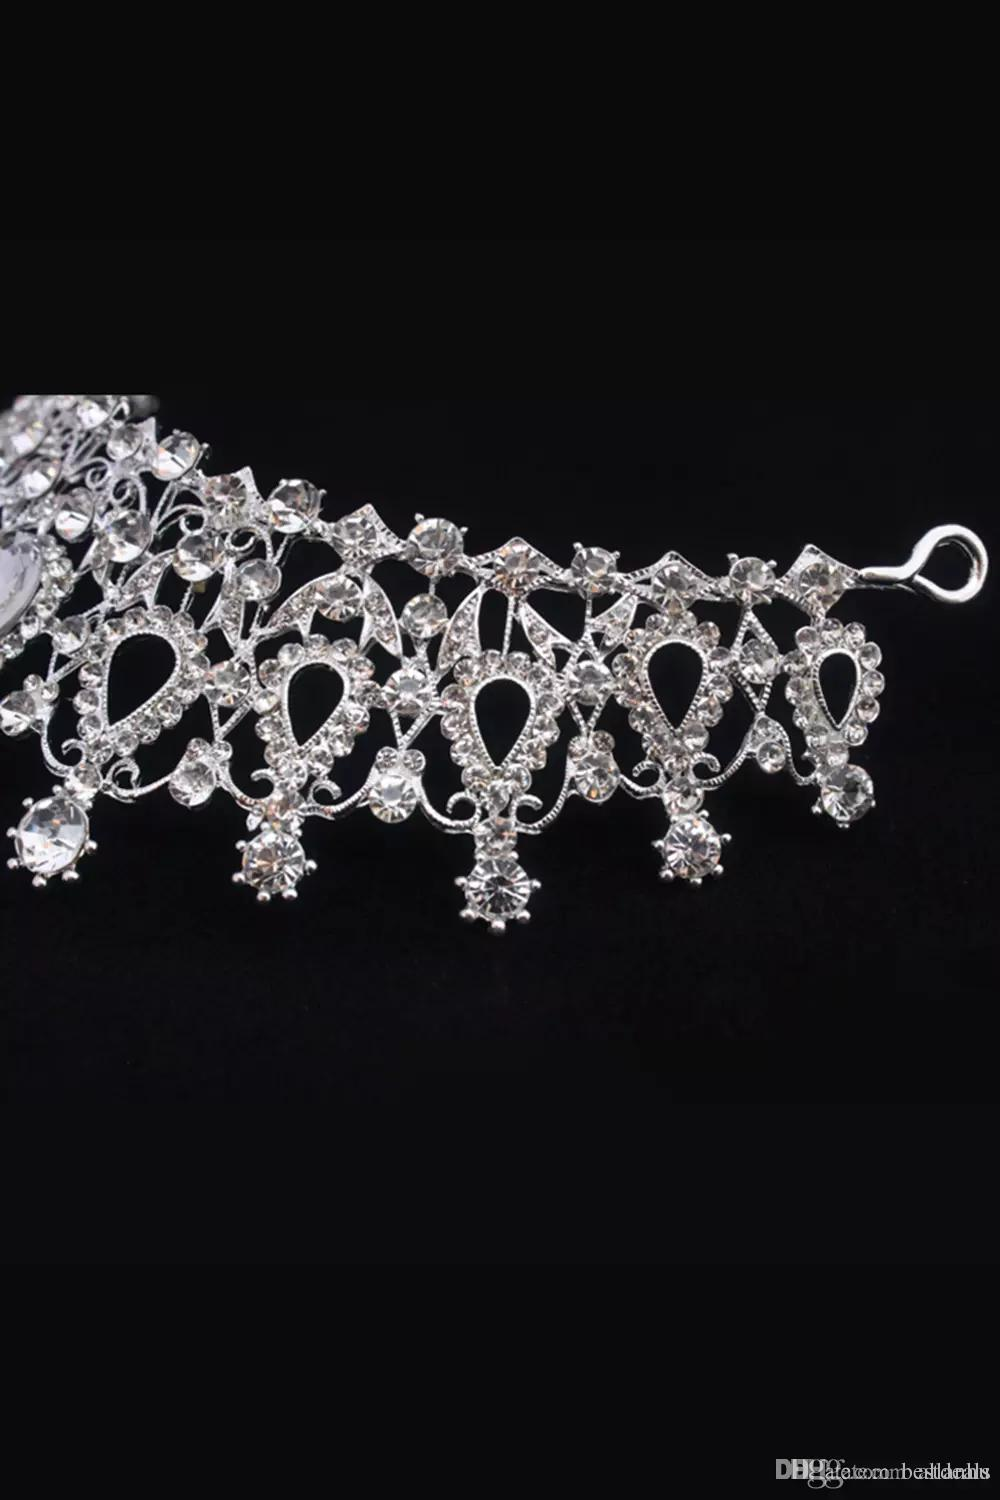 Luxury Bridal Crown Cheap but High Quality Sparkle Beaded Crystals Royal Wedding Crowns Crystal Veil Headband Hair Accessories Party CPA790